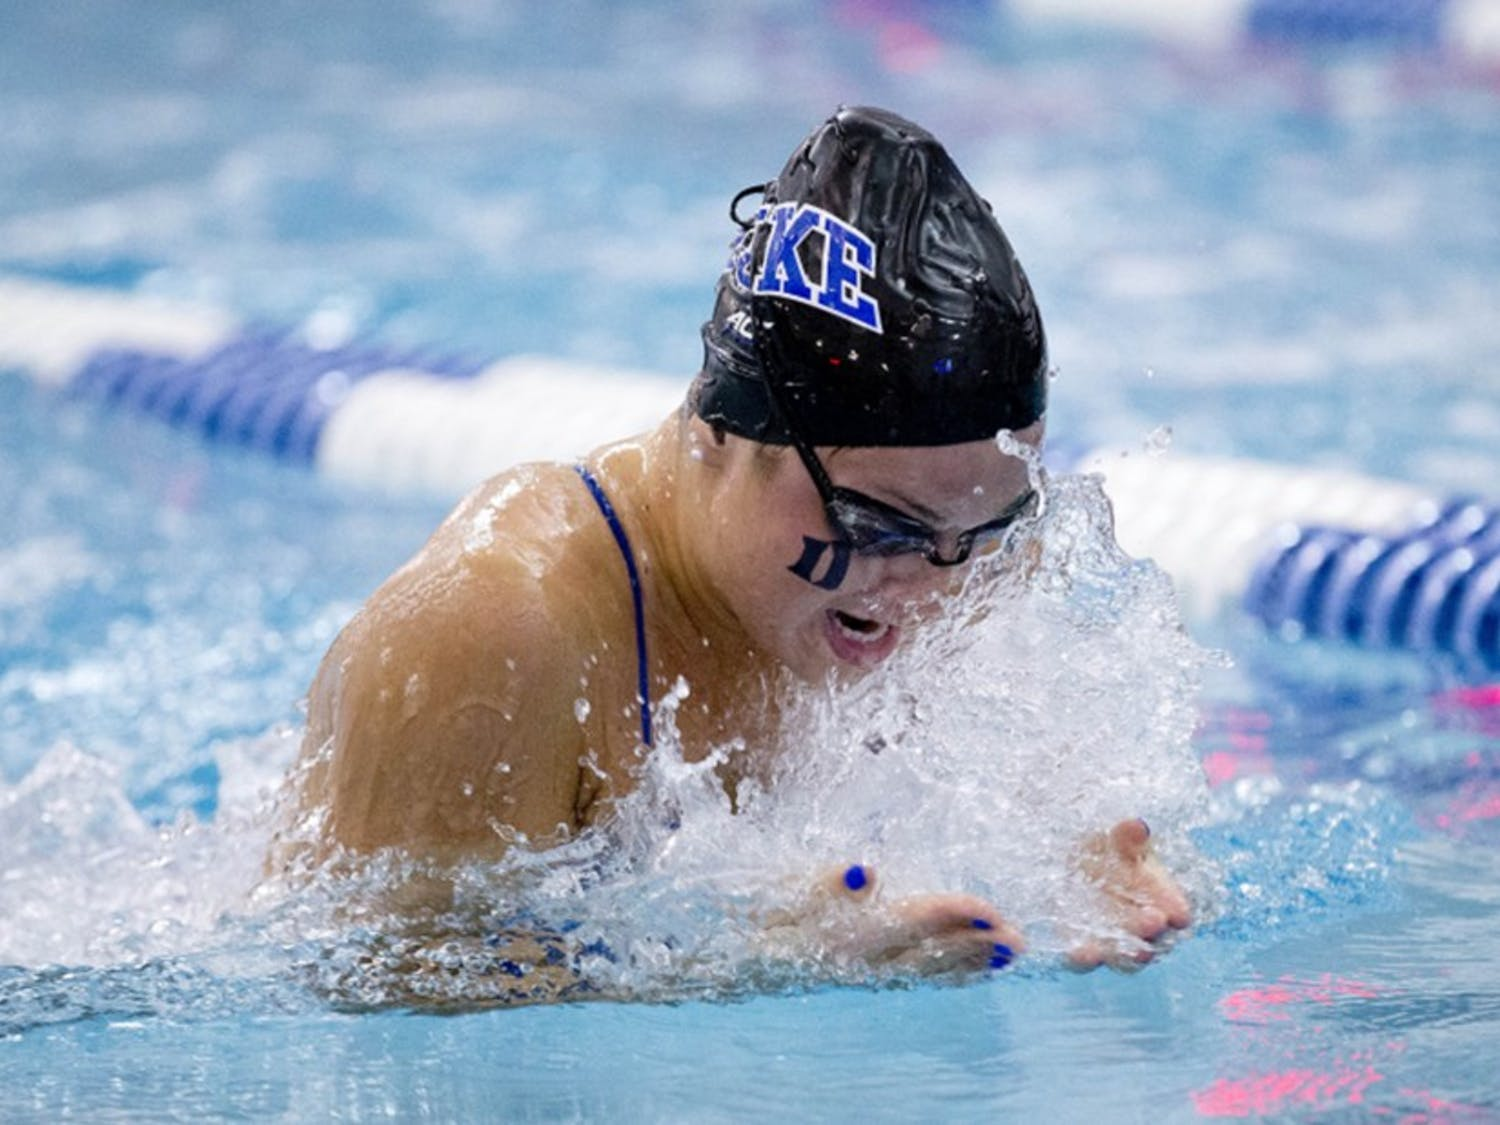 Junior Ashleigh Shanley has put together a career season, returning to peak form after surgery to remove extra muscles in her elbow following the 2013-14 campaign.